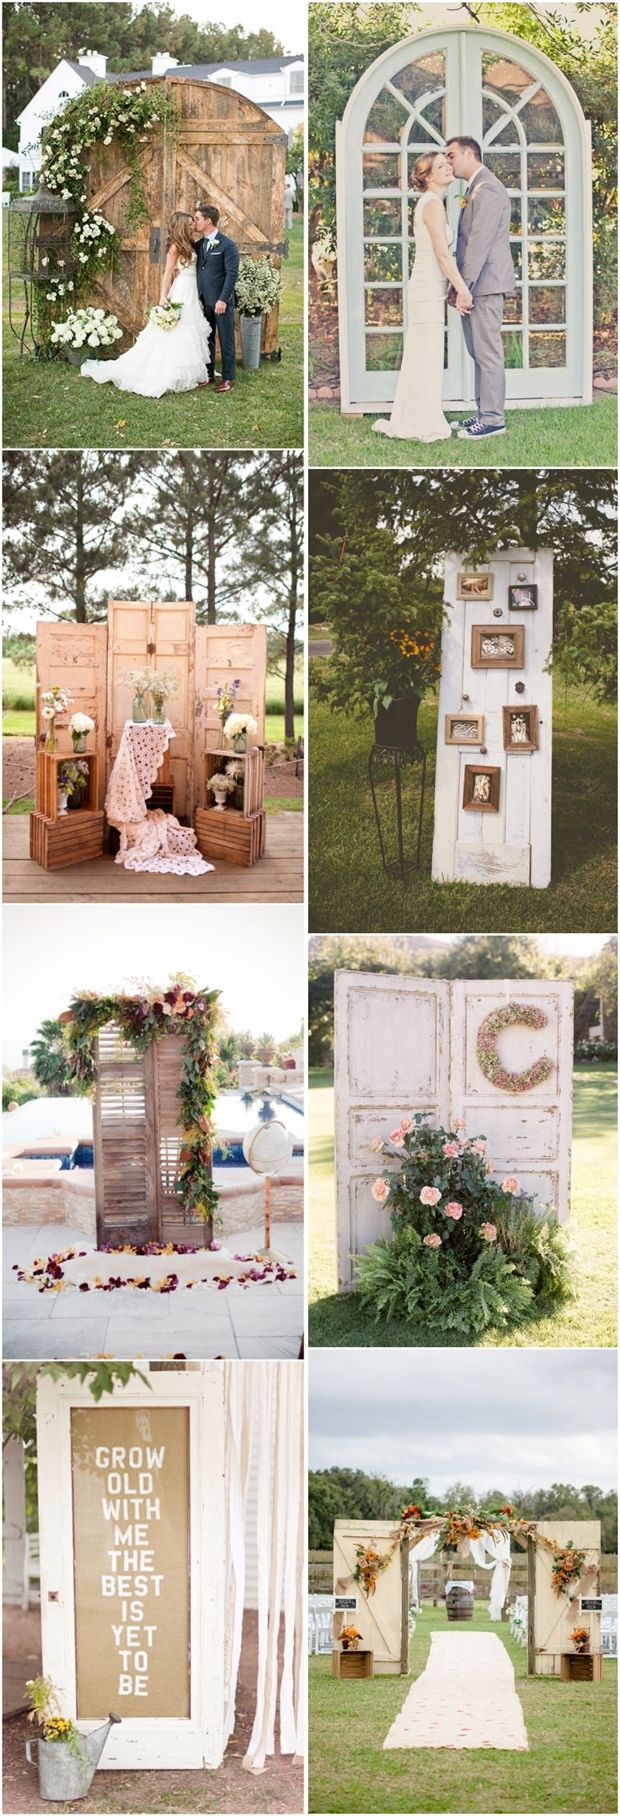 Diy rustic wedding decor ideas   Rustic Old Door Wedding Decor Ideas for Outdoor Country Weddings